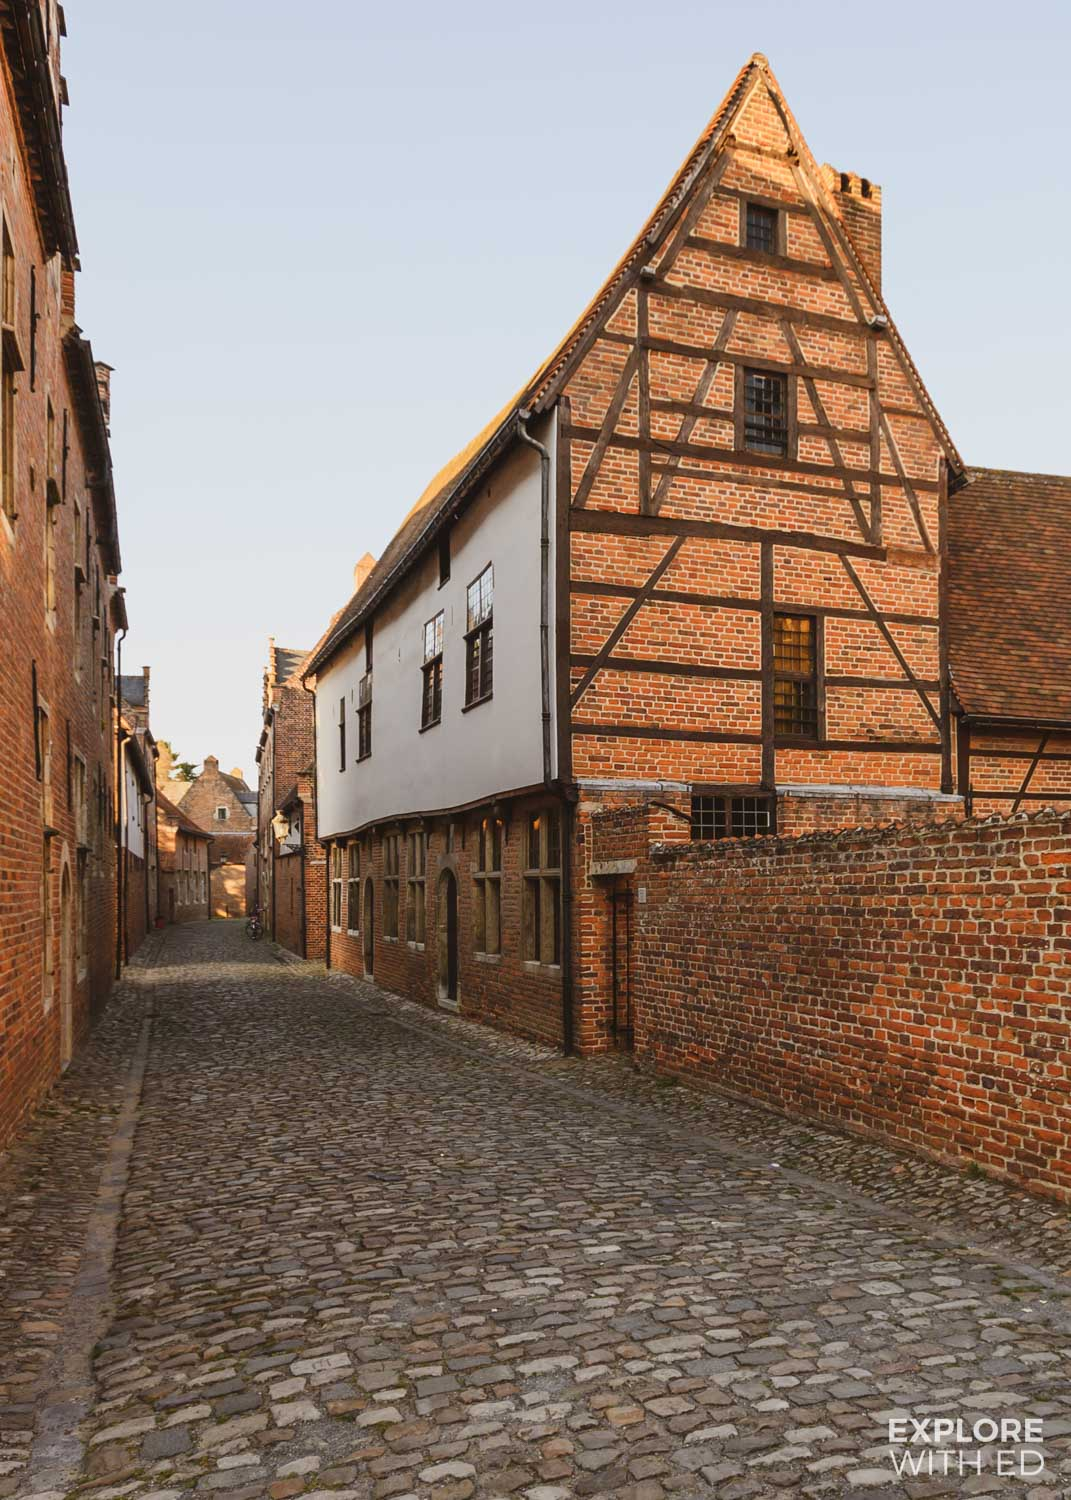 The UNESCO Flemish Beguinages in Leuven